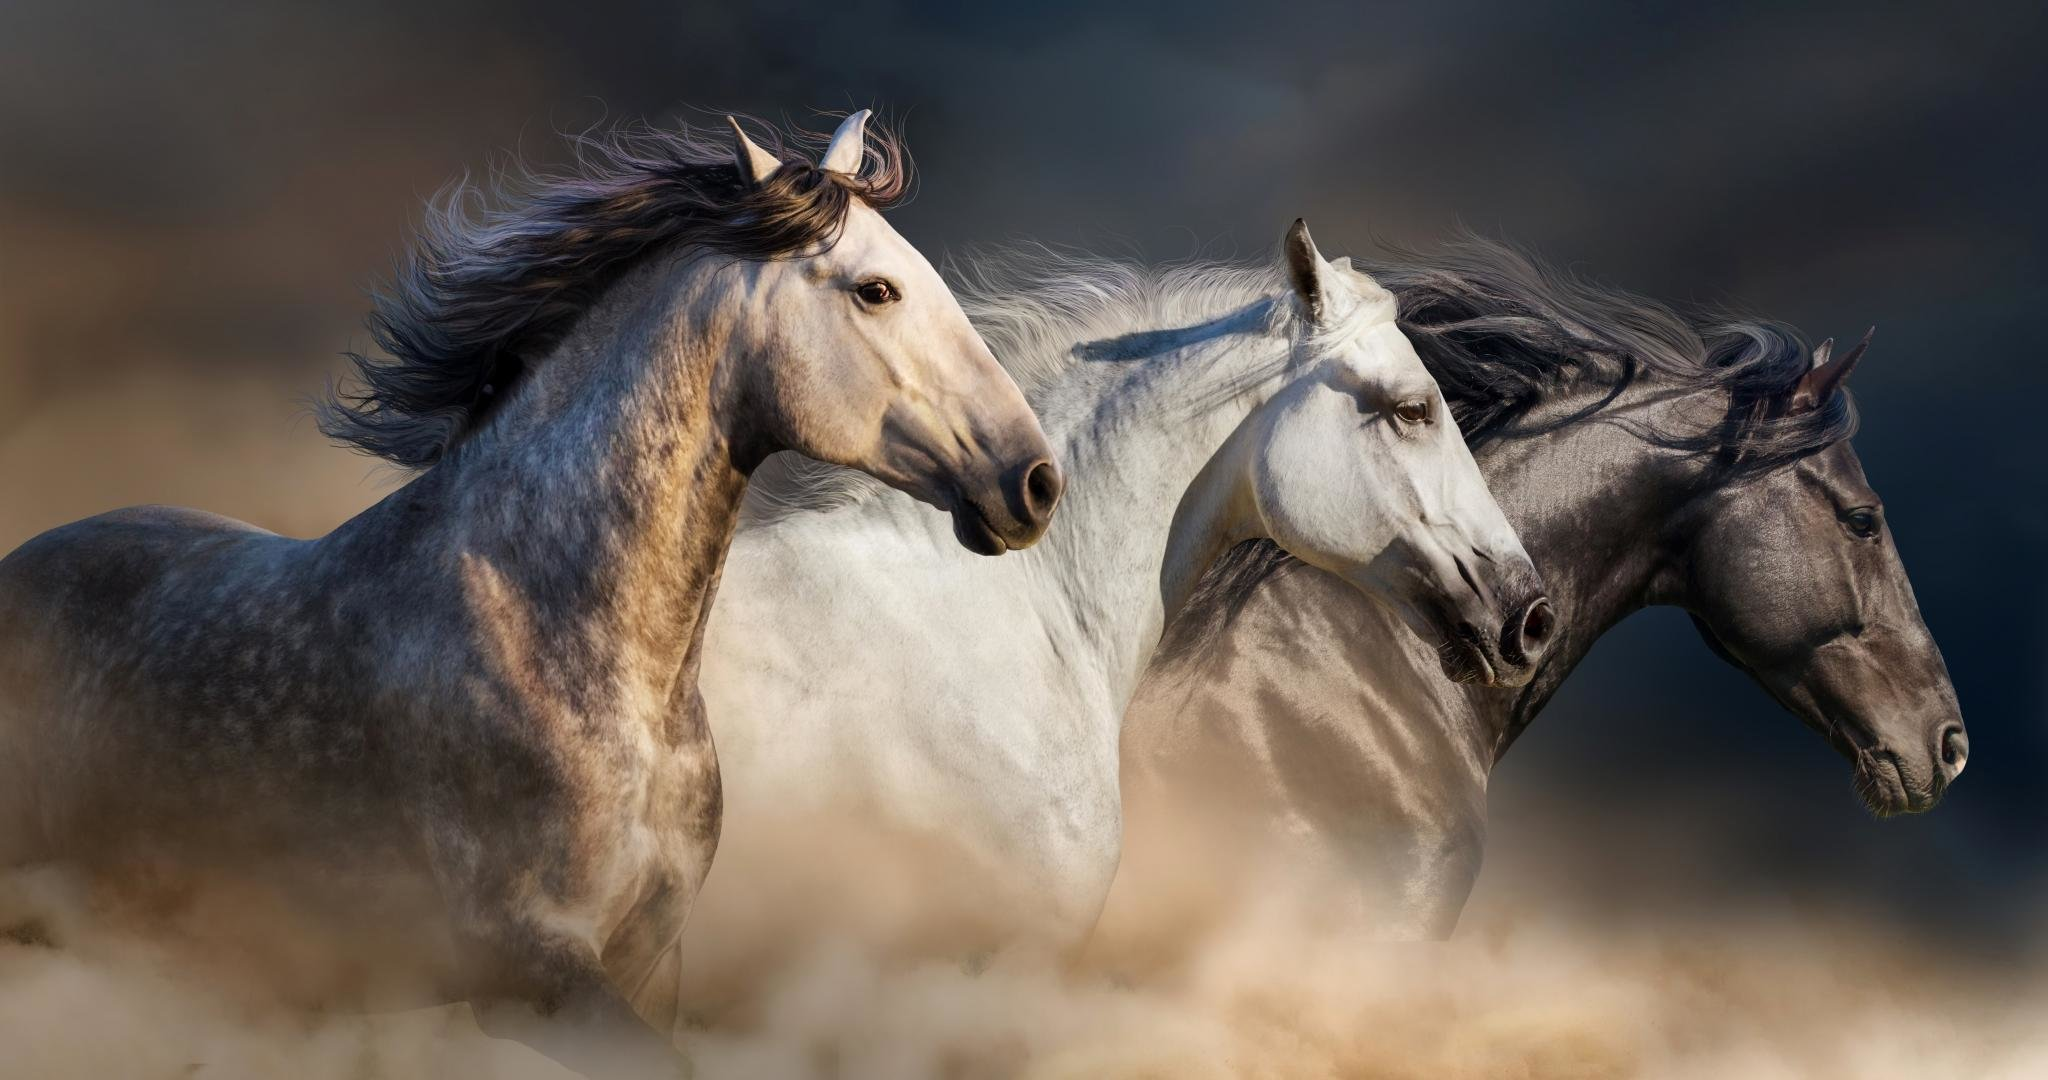 High Resolution Horse Hd 2048x1080 Wallpaper Id 23654 For Computer